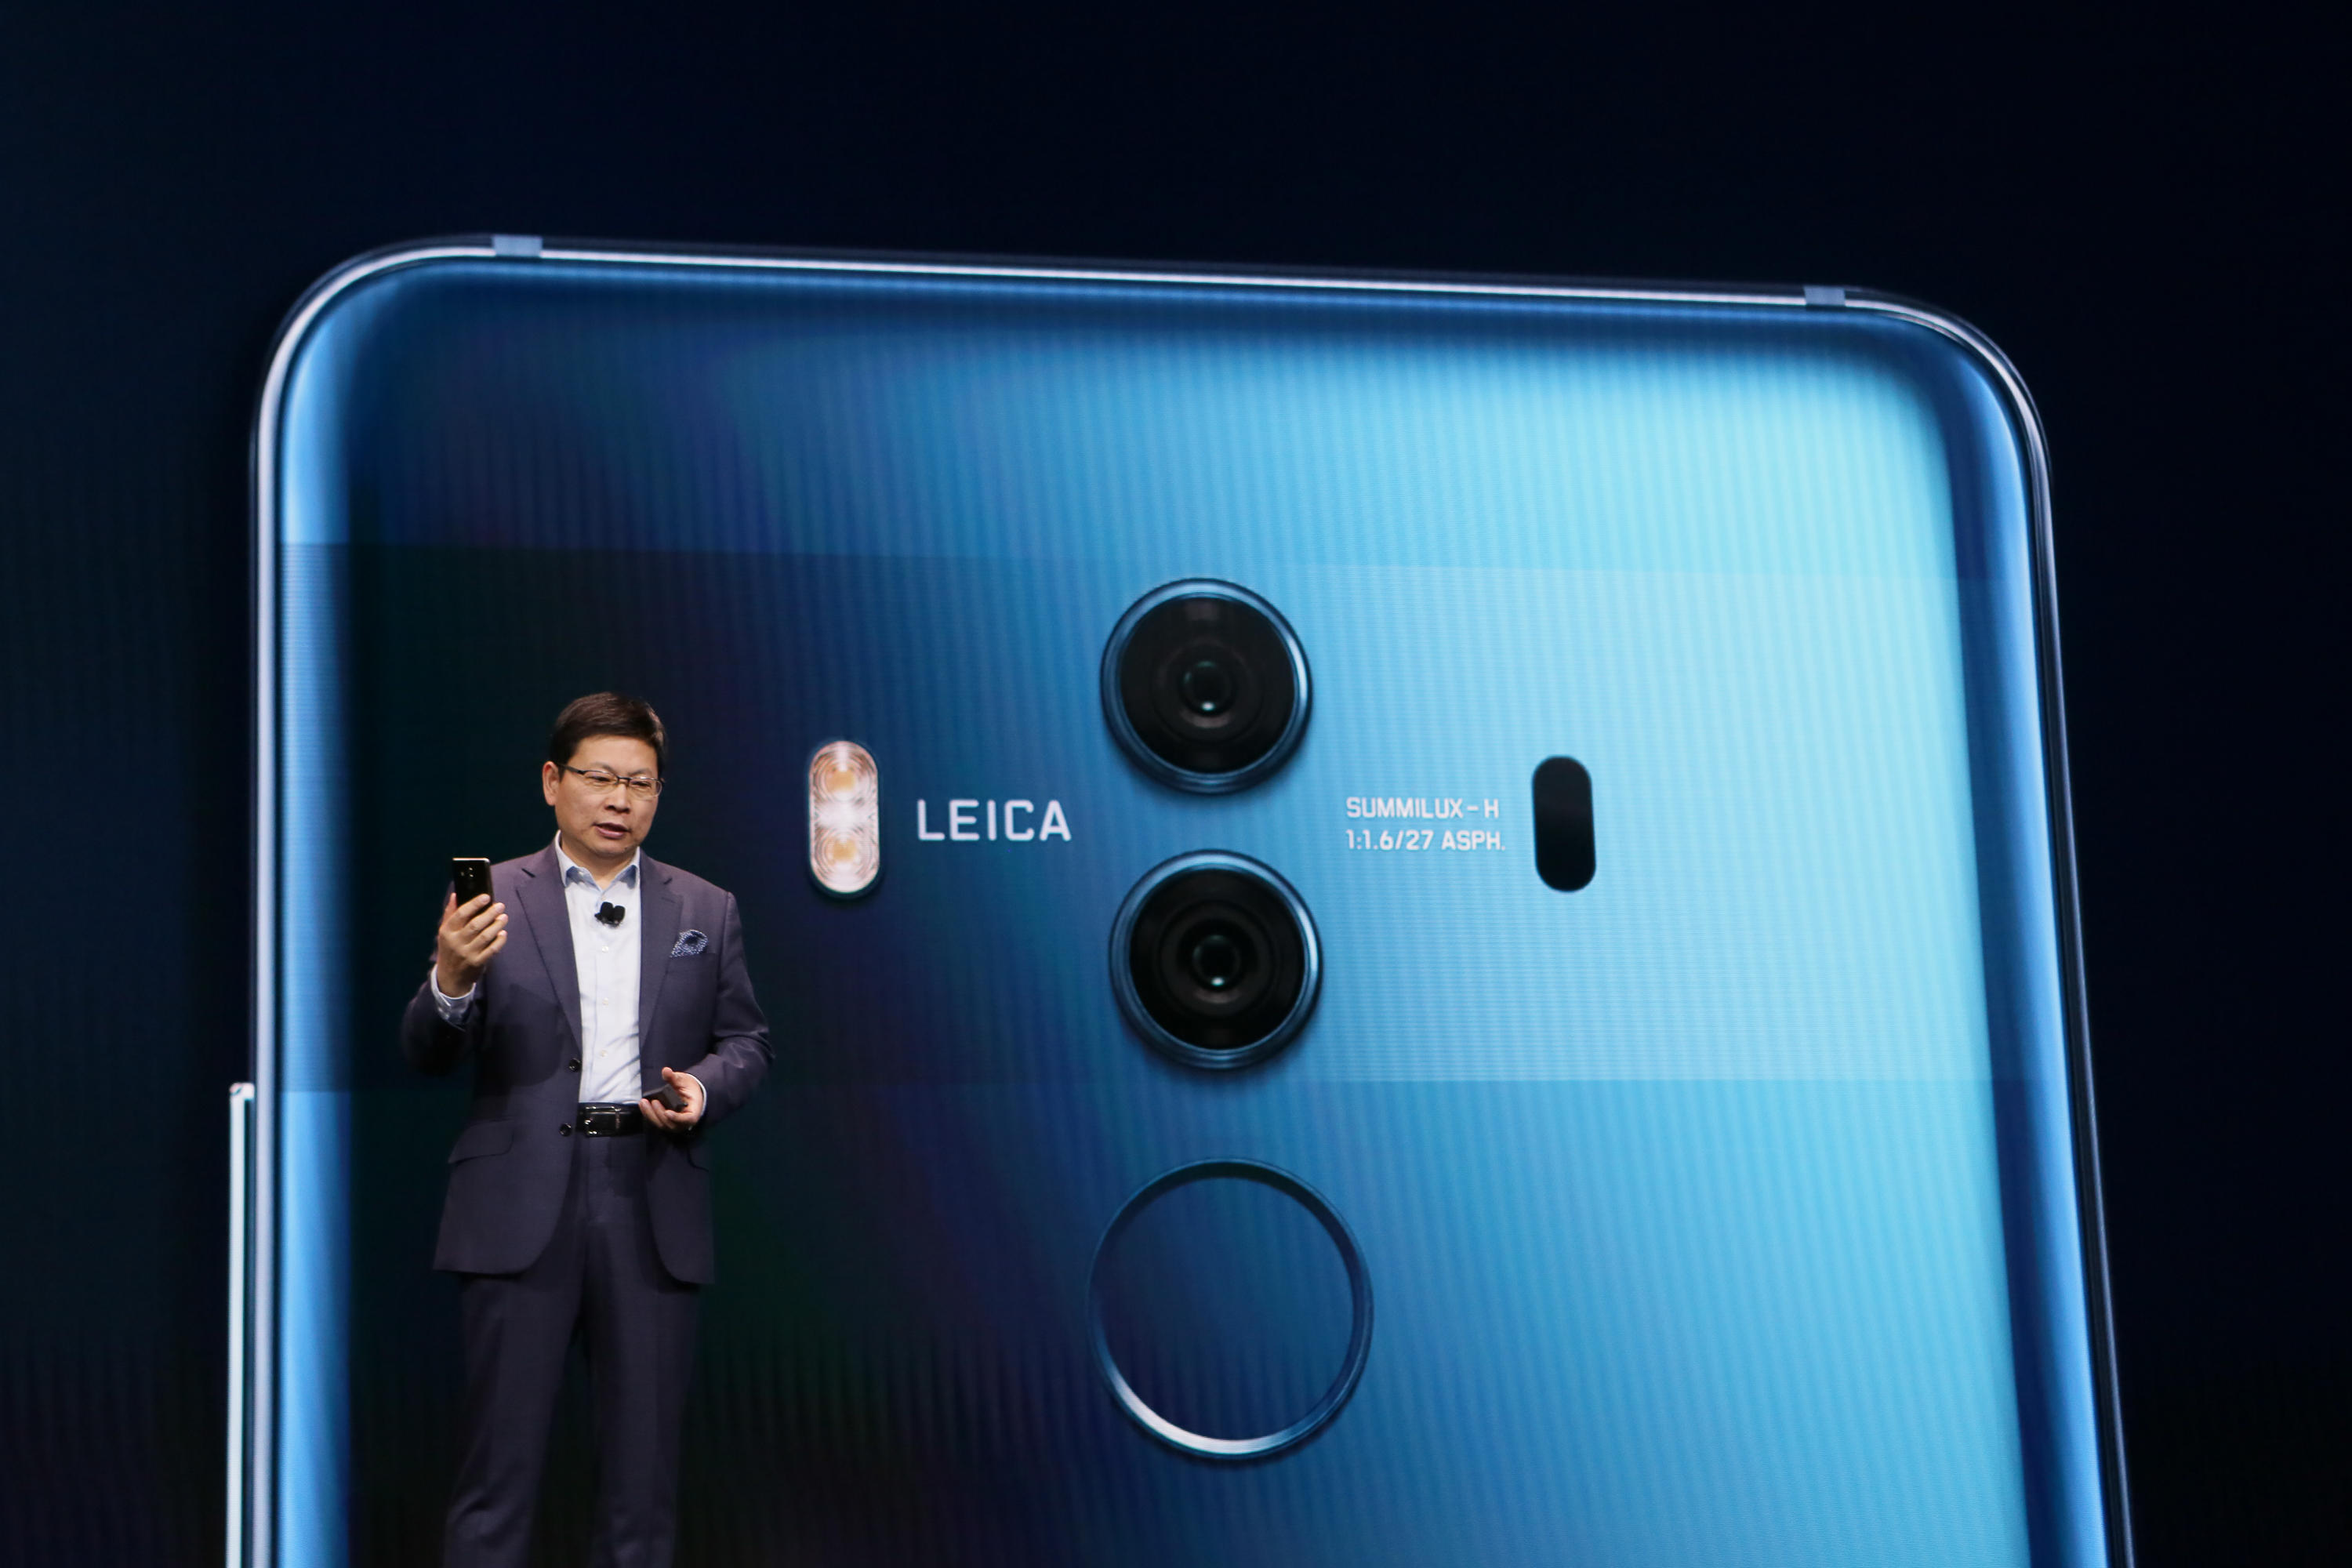 Richard Yu, CEO of Huawei's consumer business group, touts the Mate 10 Pro Porsche Edition at CES.